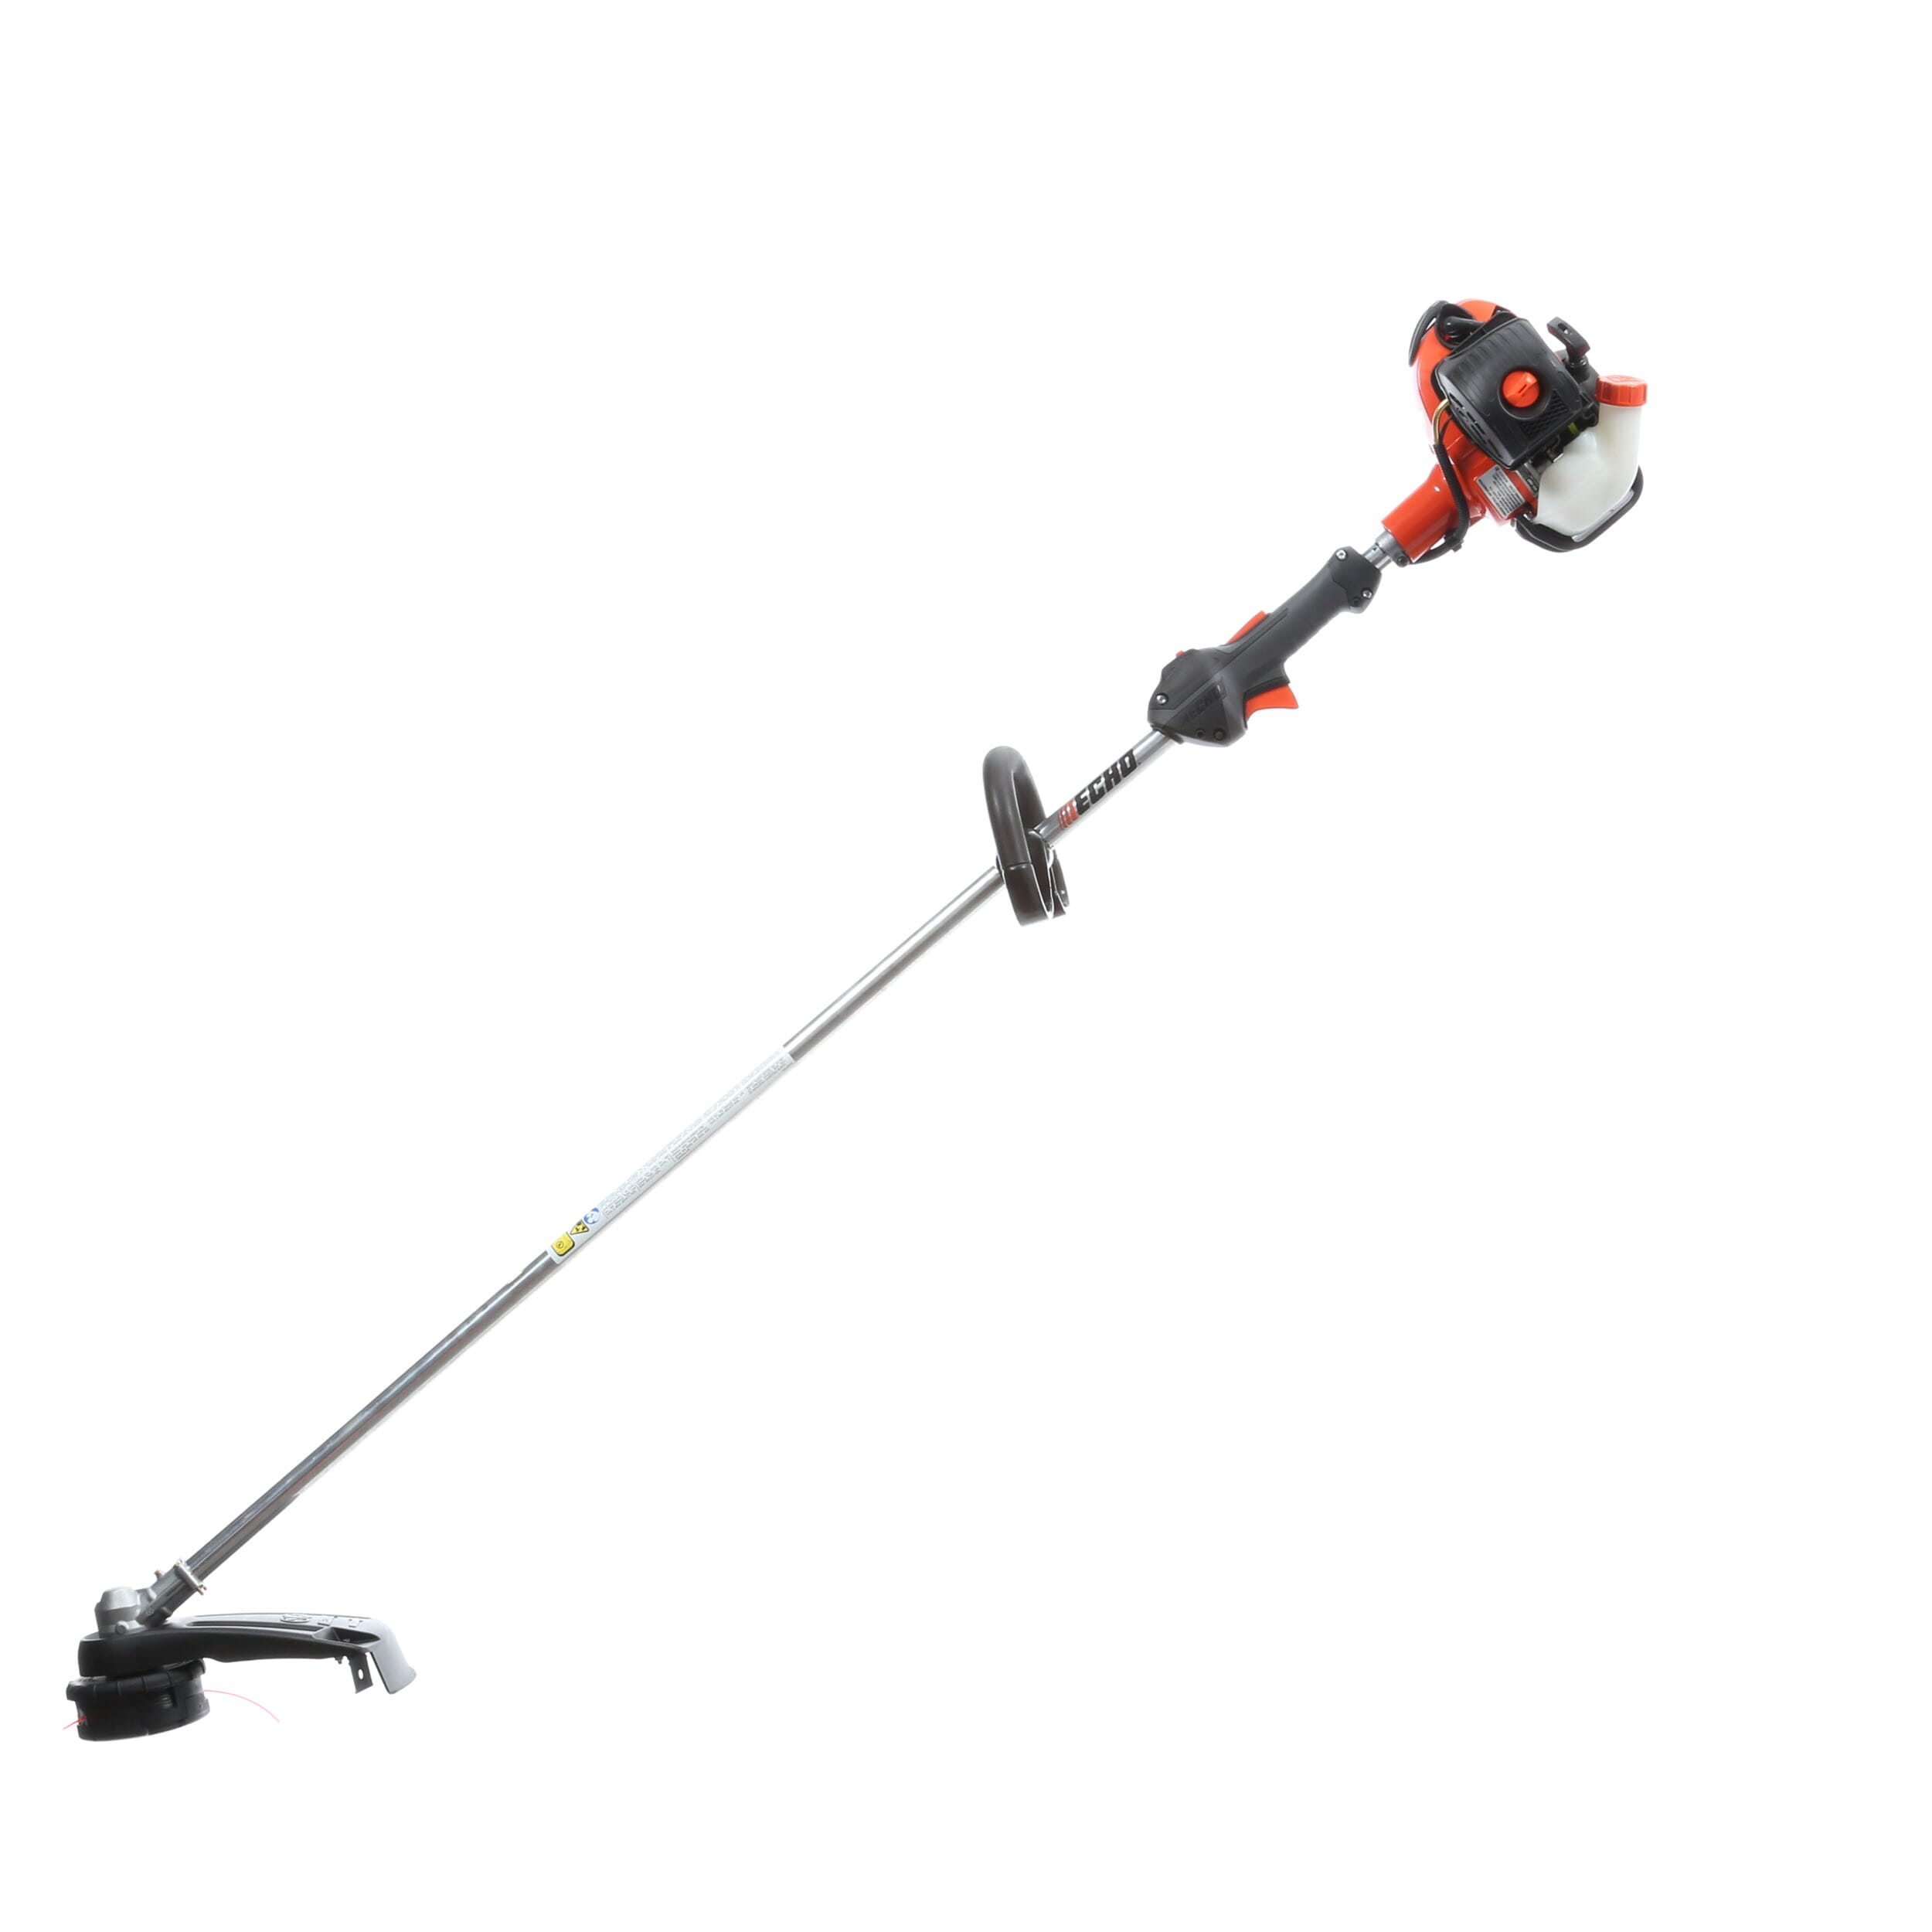 ECHO 2 Cycle 21.2cc Straight Shaft Gas Trimmer-SRM-225 - The Home ...